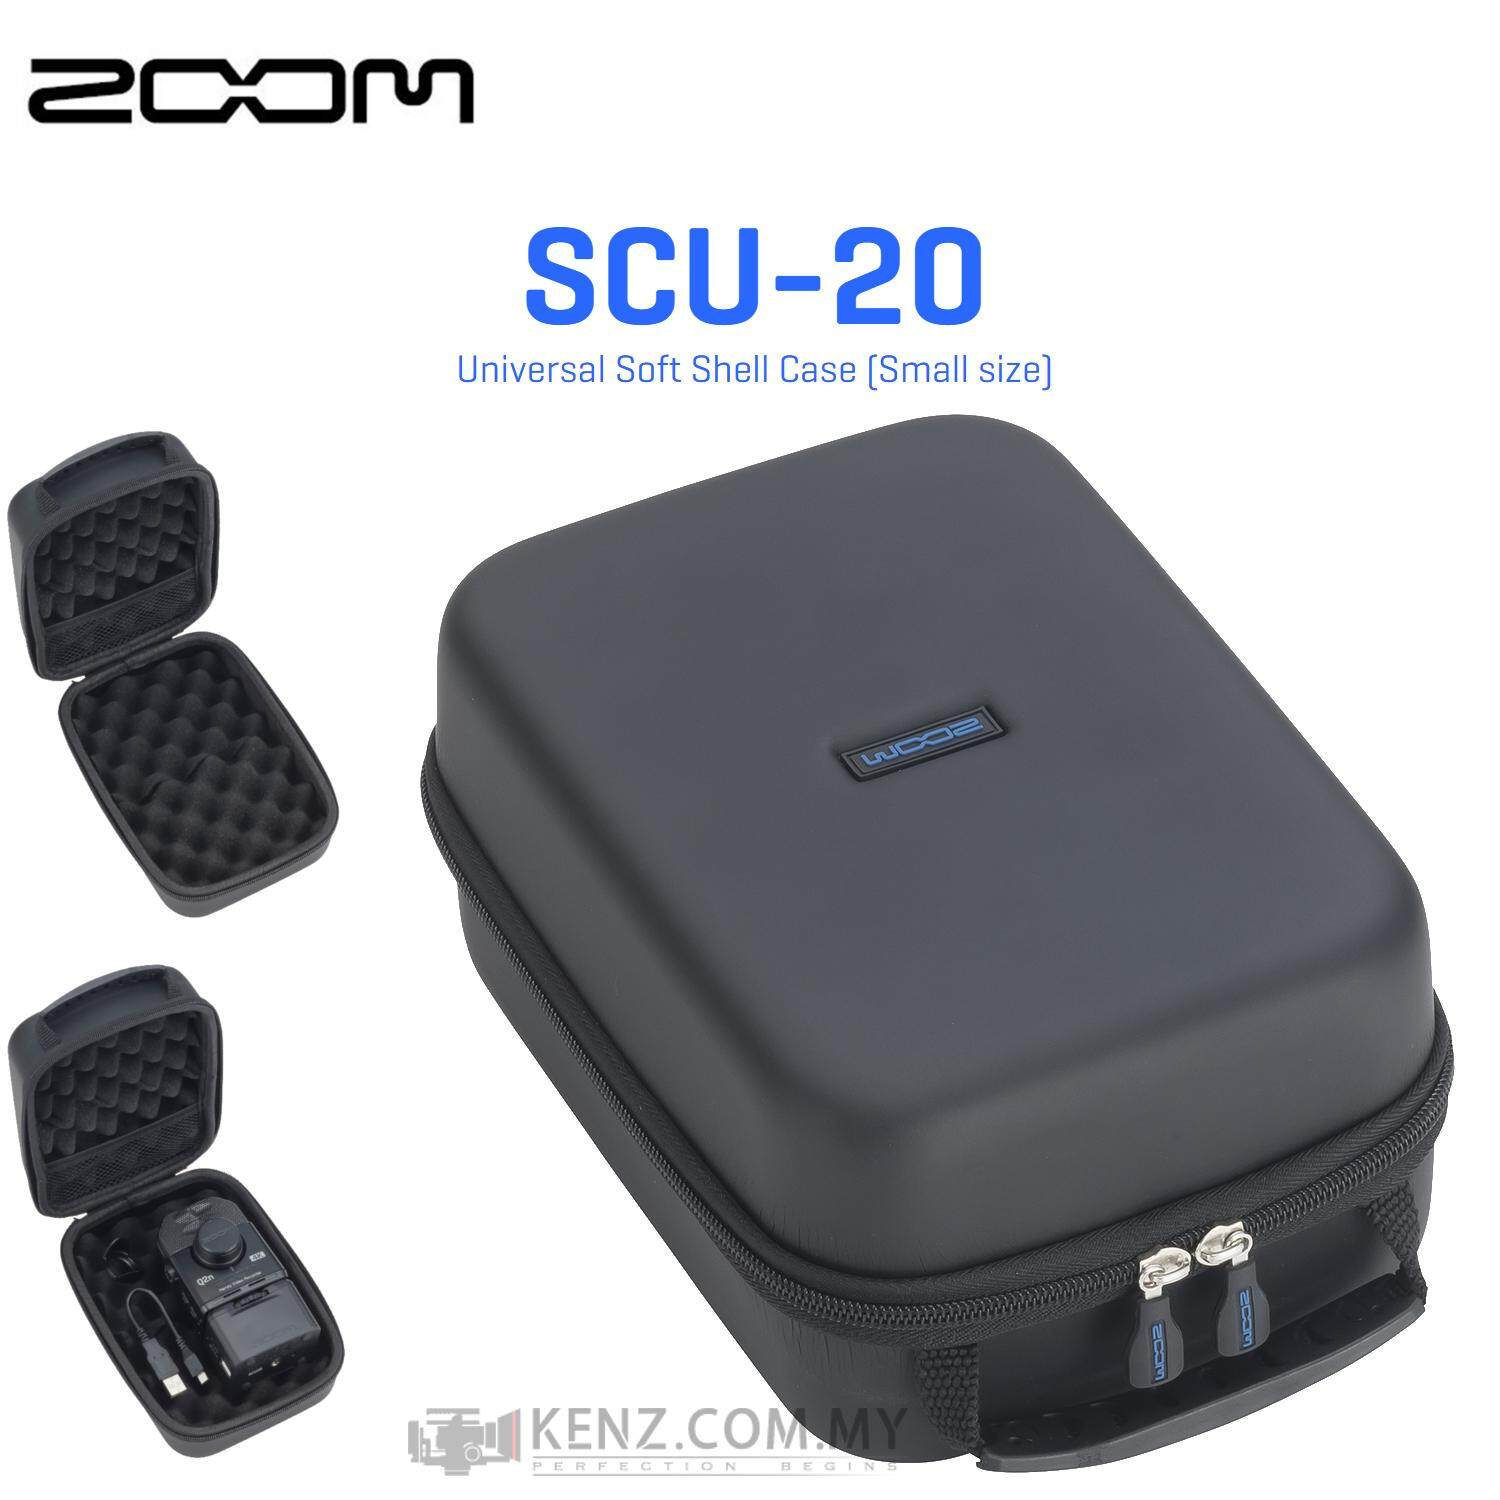 Zoom SCU-20 Universal Soft Shell Case (Small size) Lightweight & Ultra-versatile carrying bag to fit the Zoom Recorder